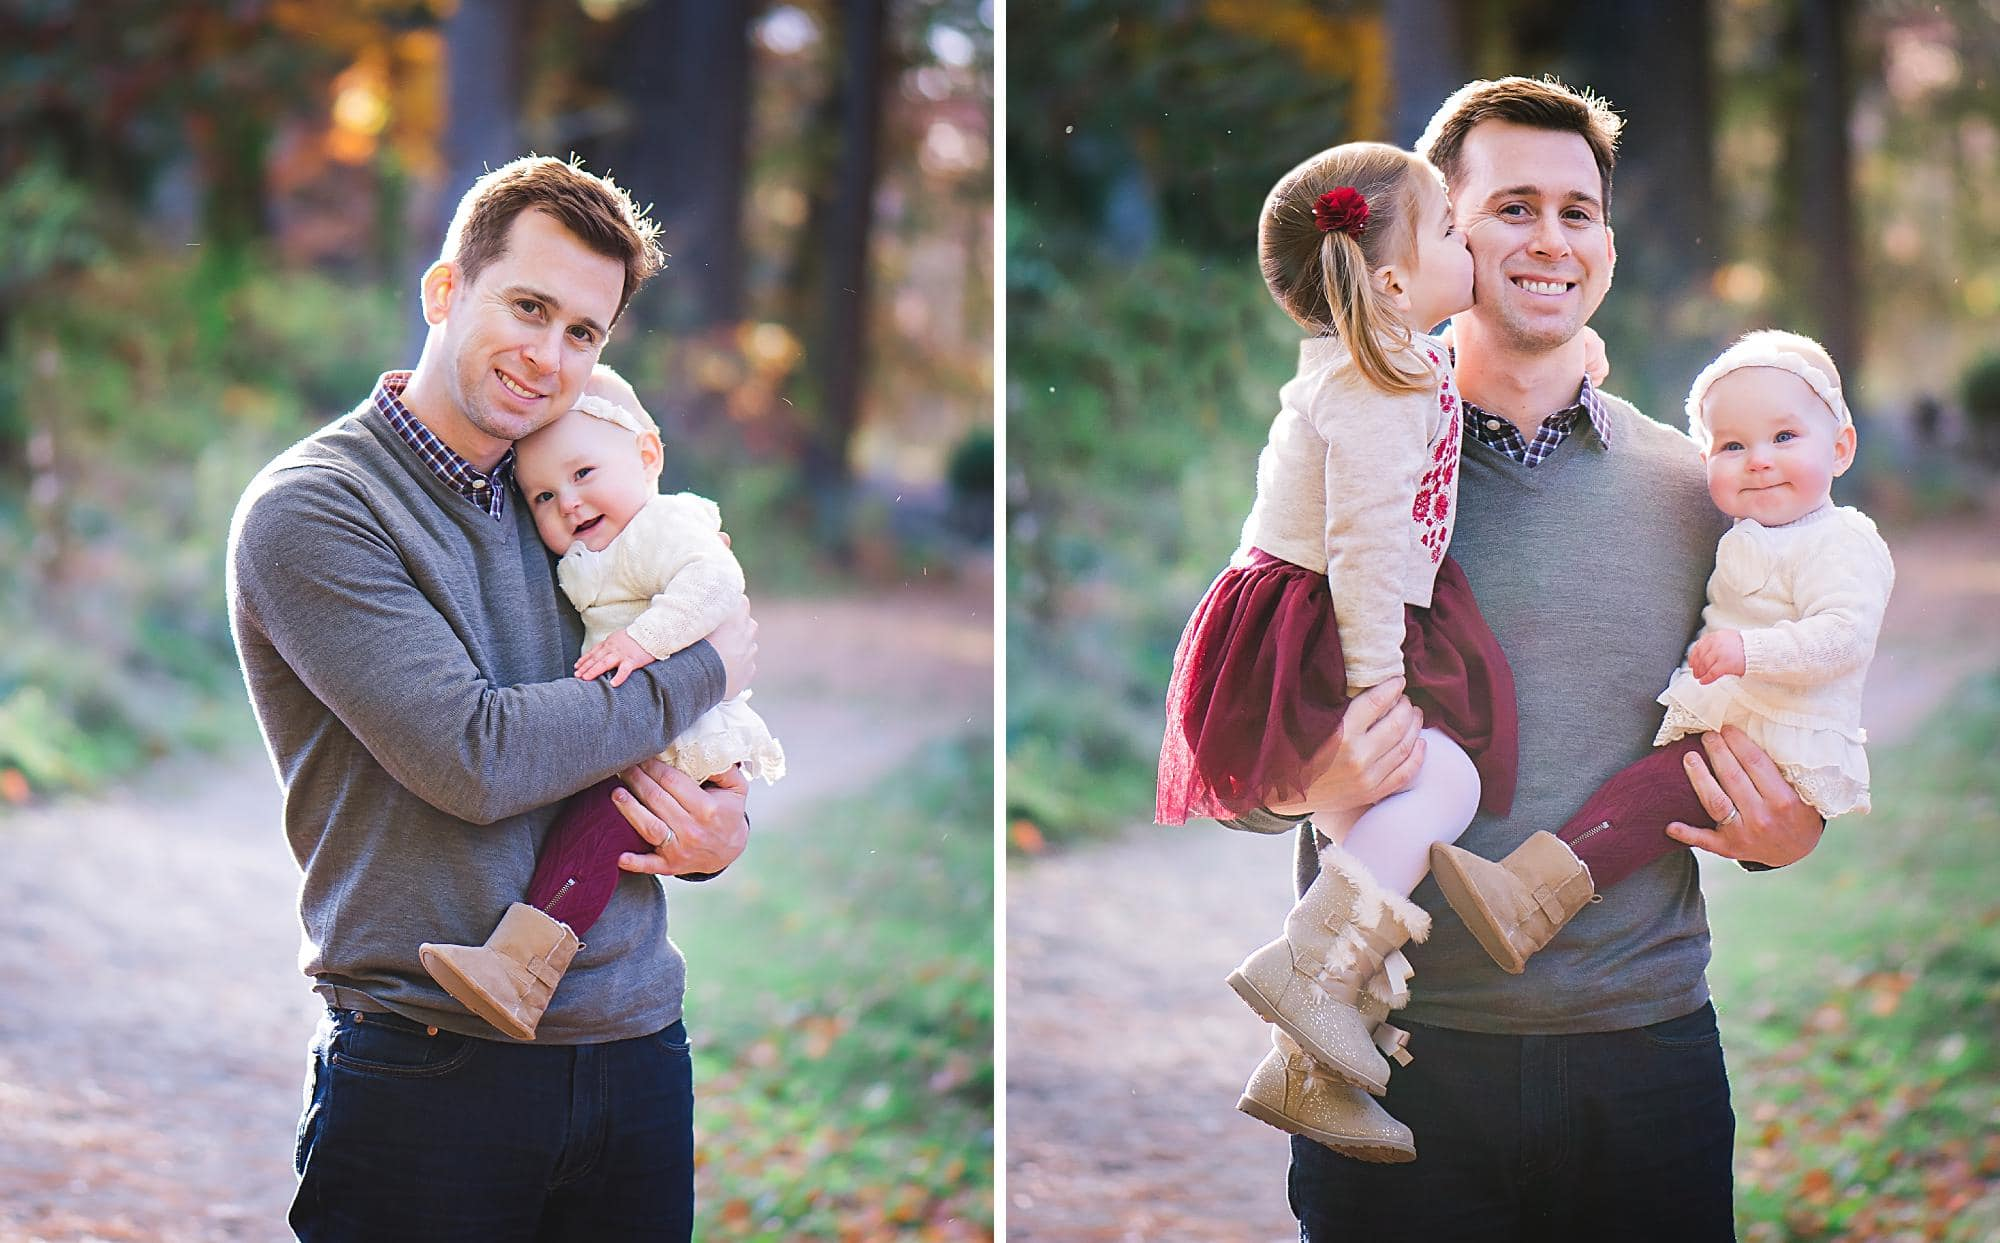 Dad hugging young daughters on a path with Fall colors